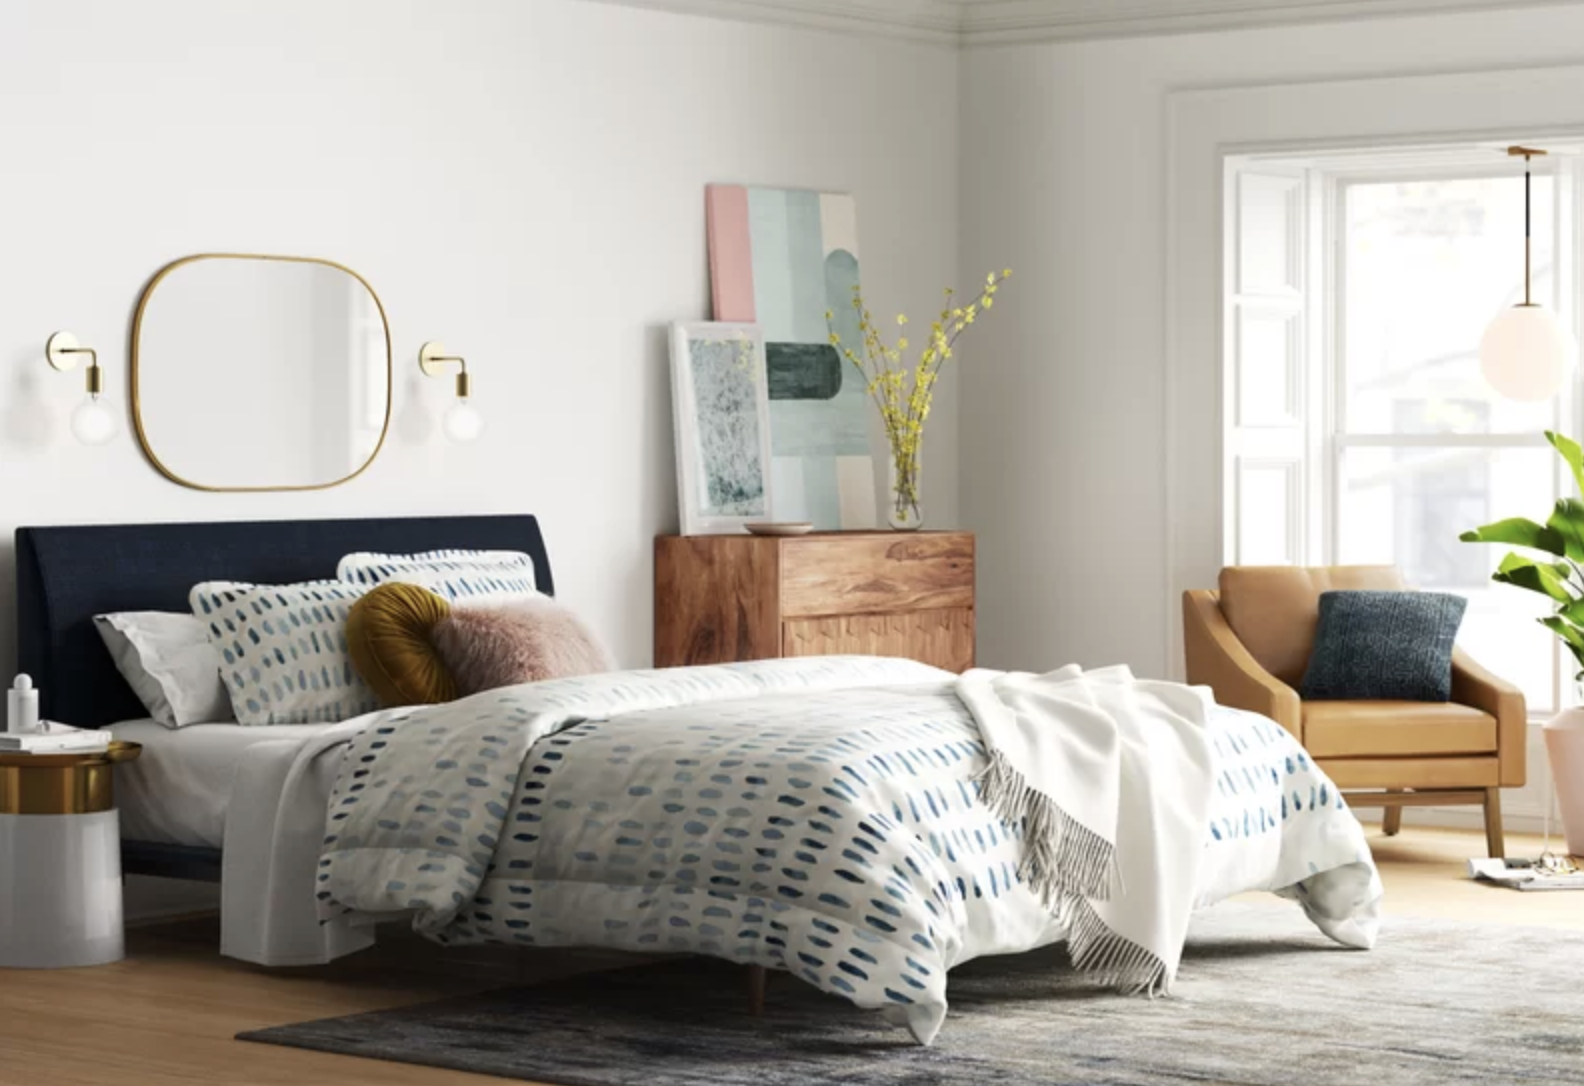 Wayfair just launched having a massive flash sale — but only for the next 48 hours